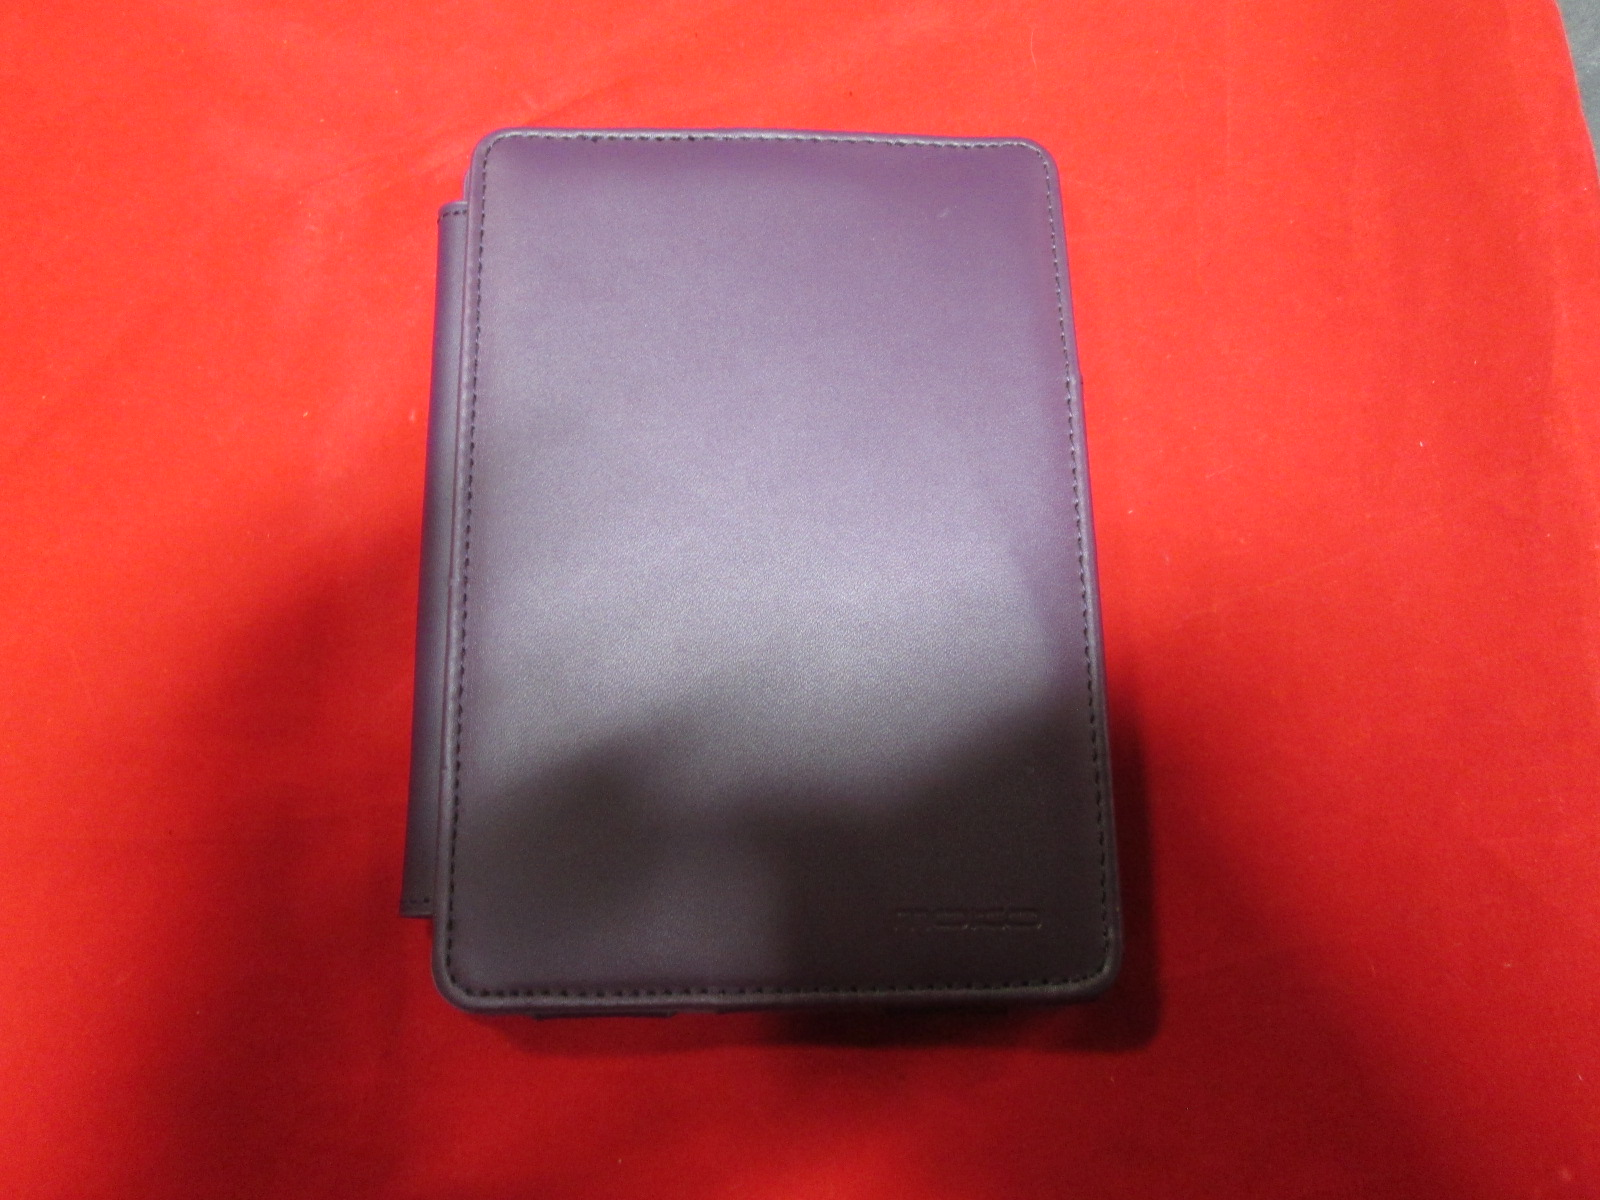 MoKo Case Kindle Paperwhite Cover All-Kindle Paperwhite Purple